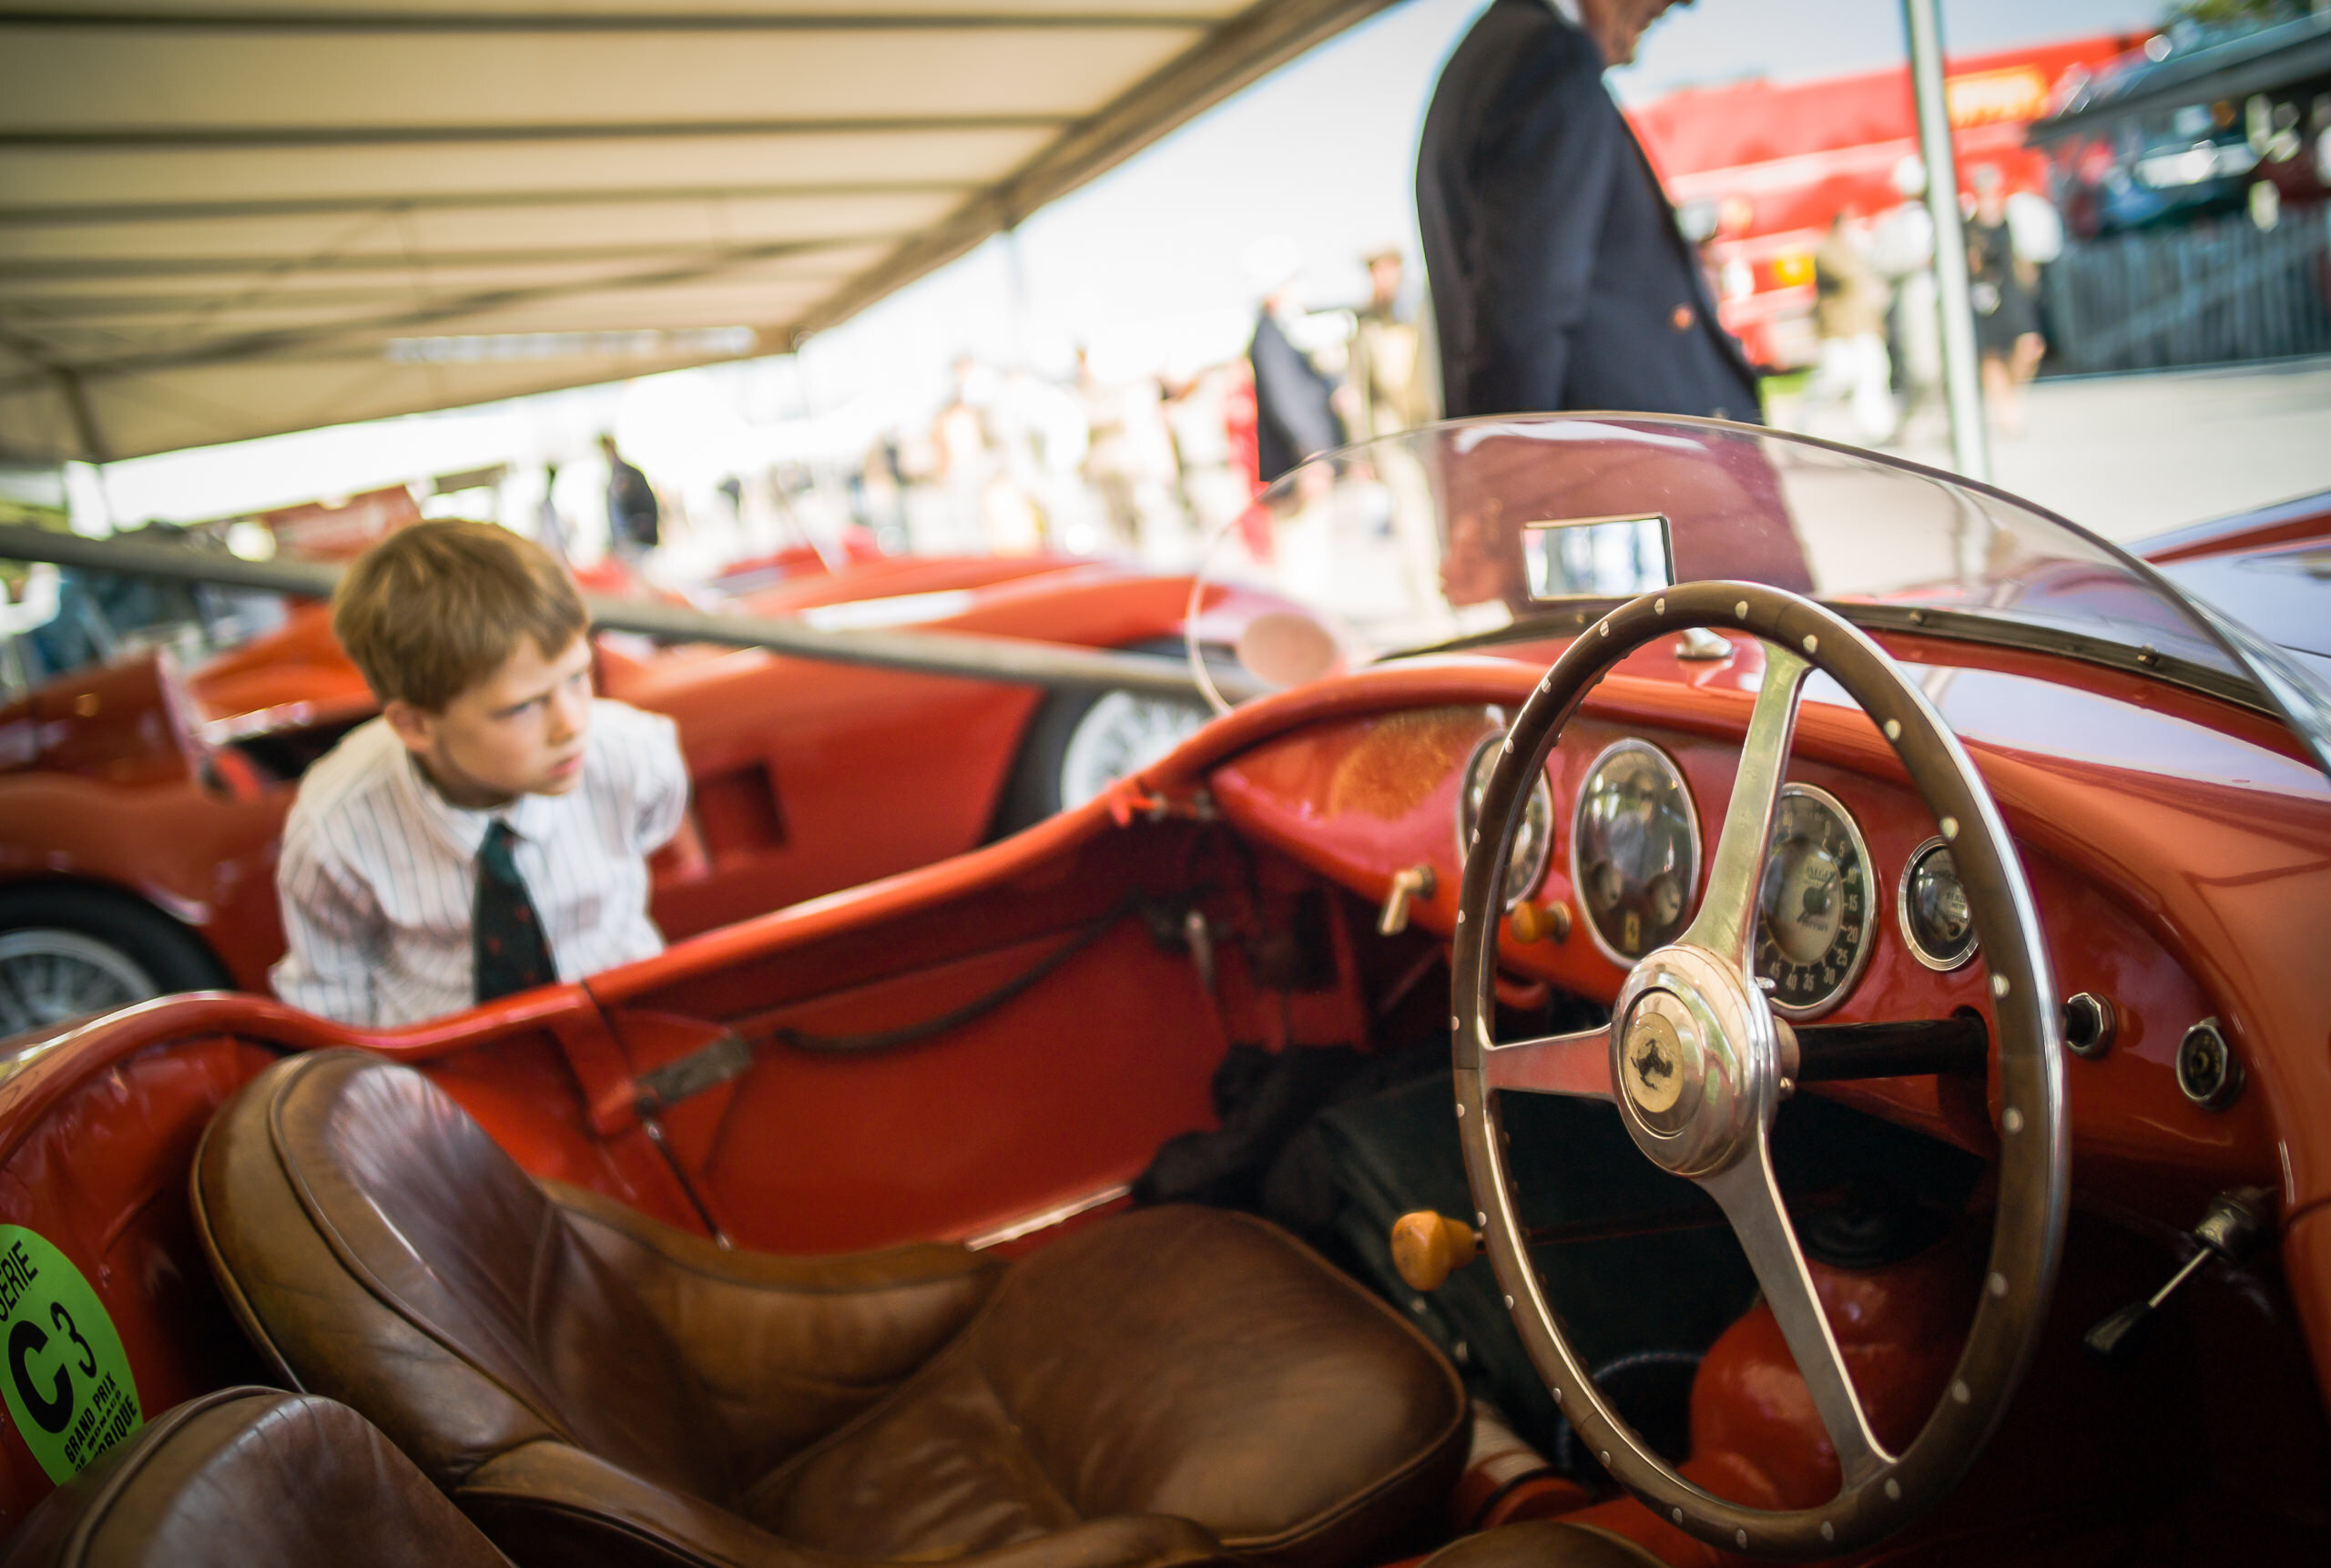 Wayfinder Workshop Goodwood Revival 21Mm Summilux Ferrari Interior Boy By Brett Leica Photographer